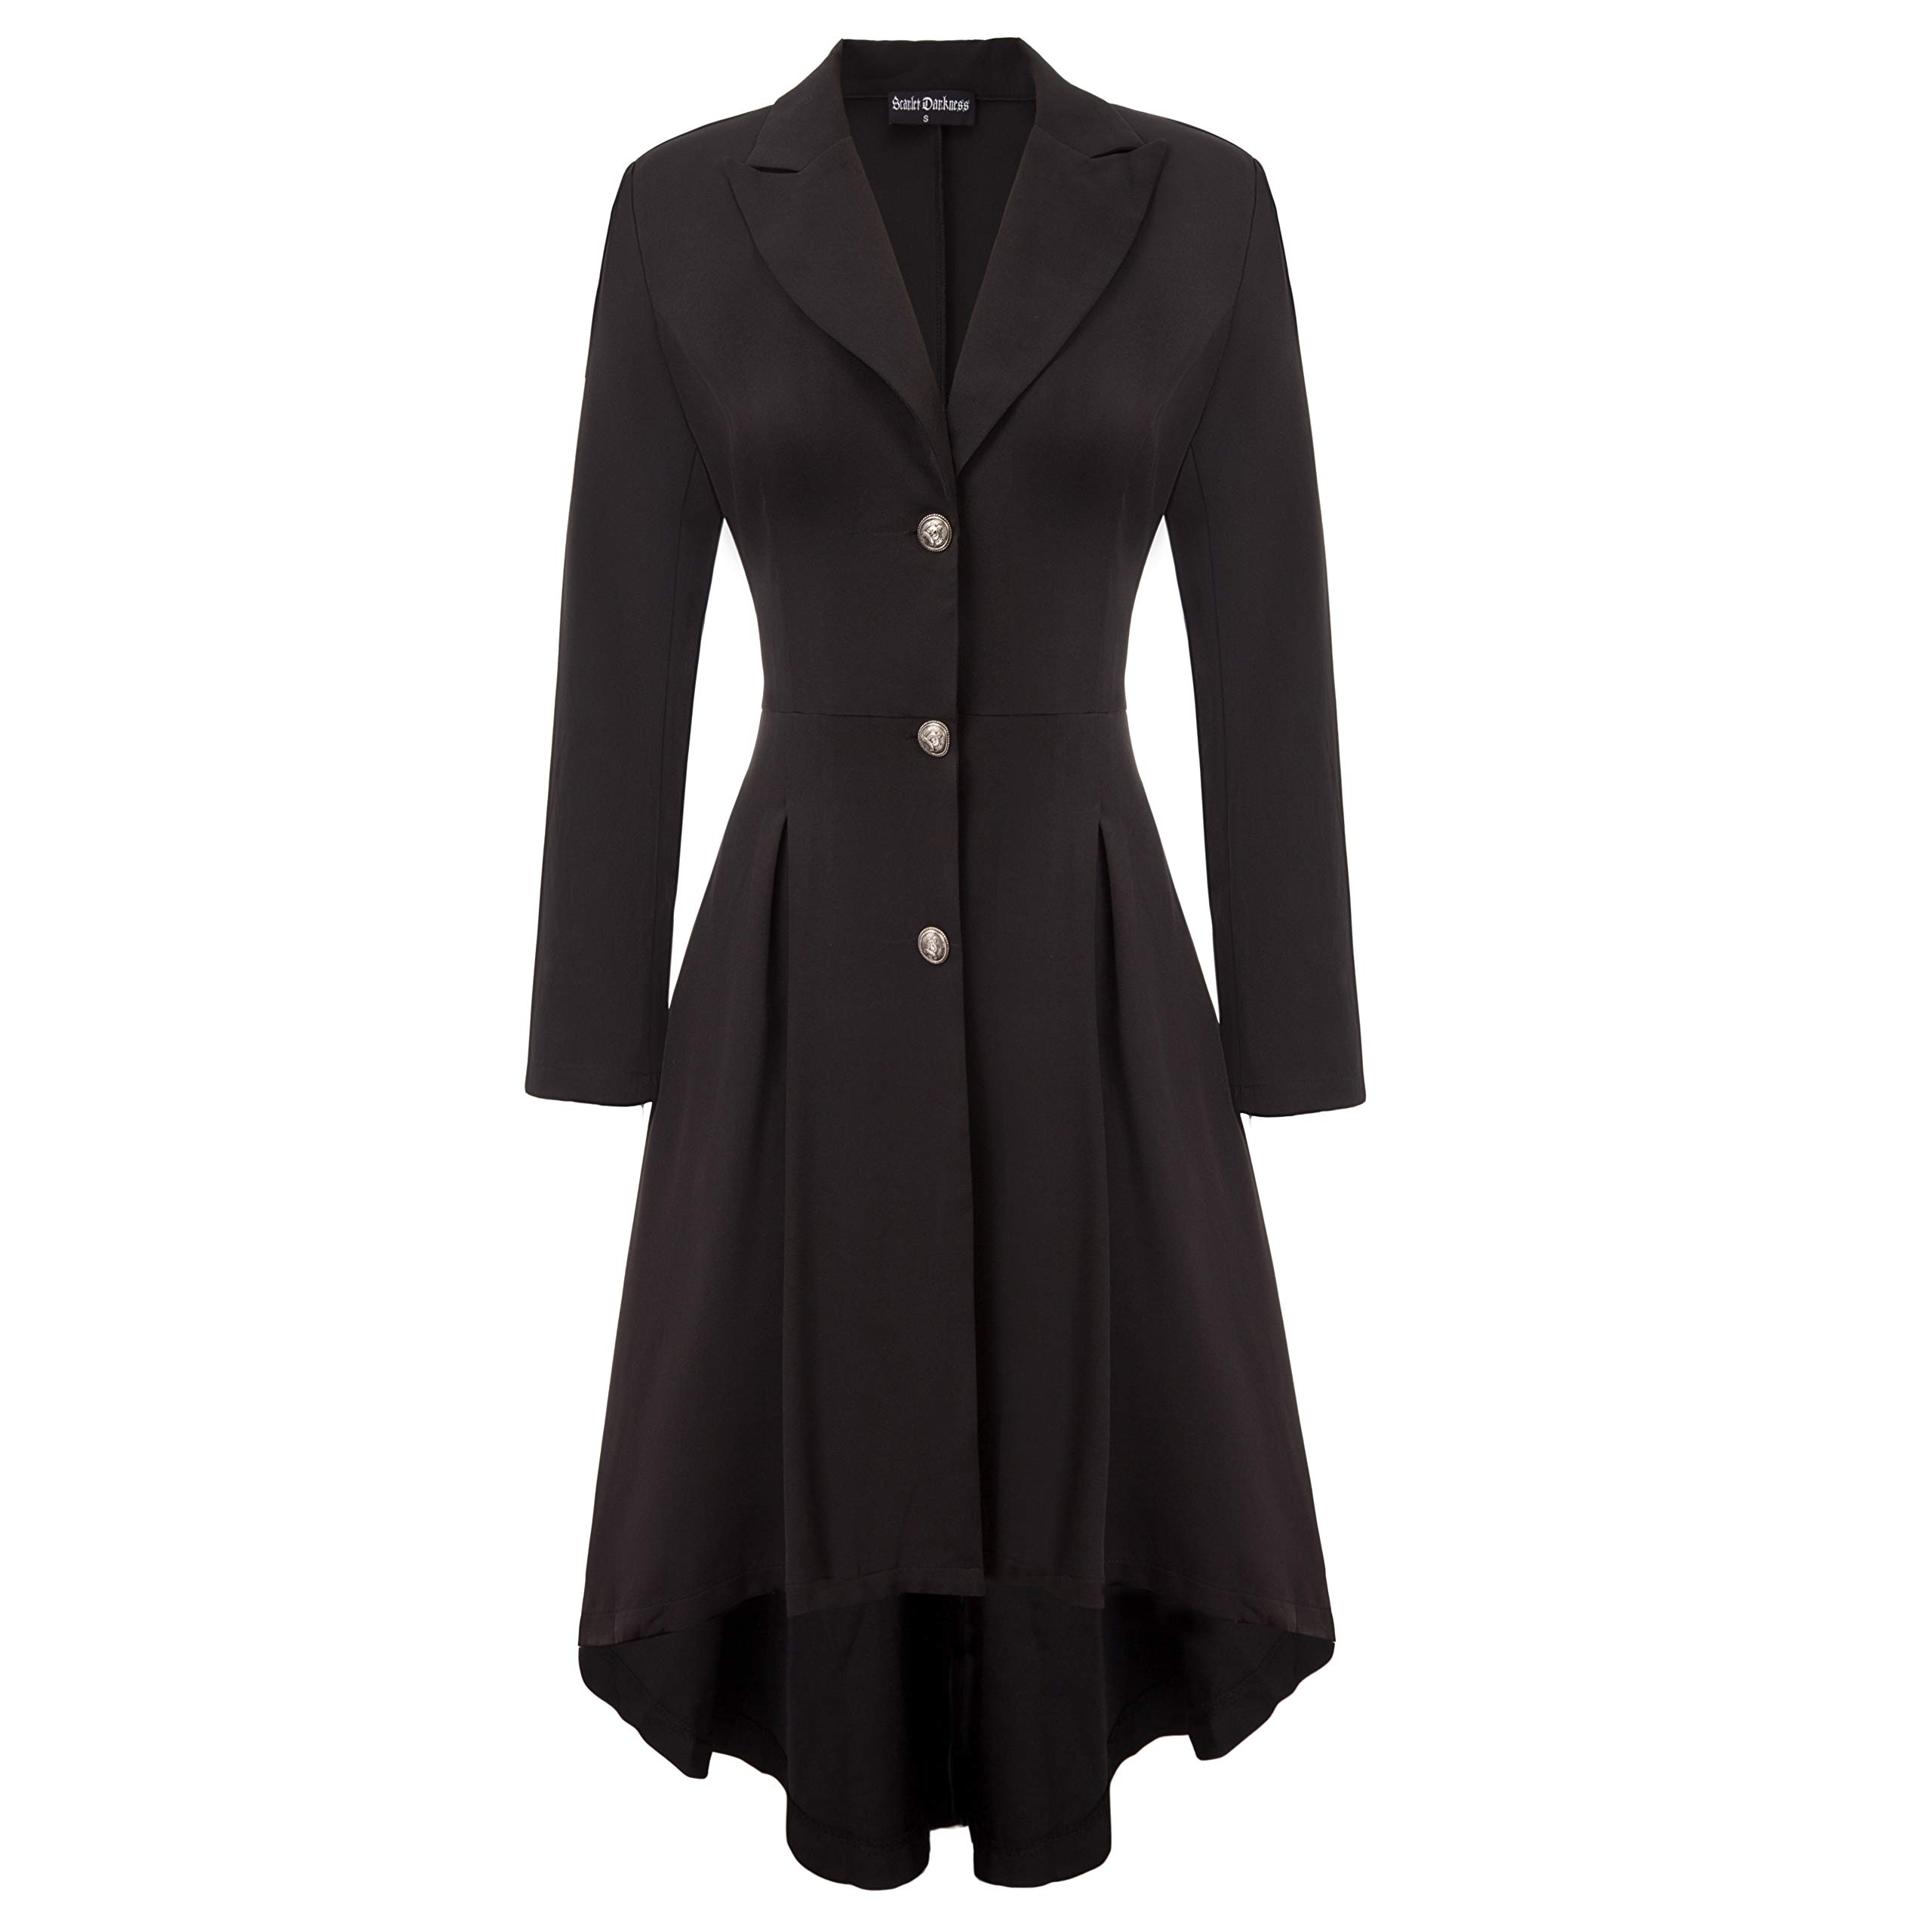 SCARLET DARKNESS Women Gothic Trench Coat Turn-Down Lapel Collar Coat Black S by SCARLET DARKNESS